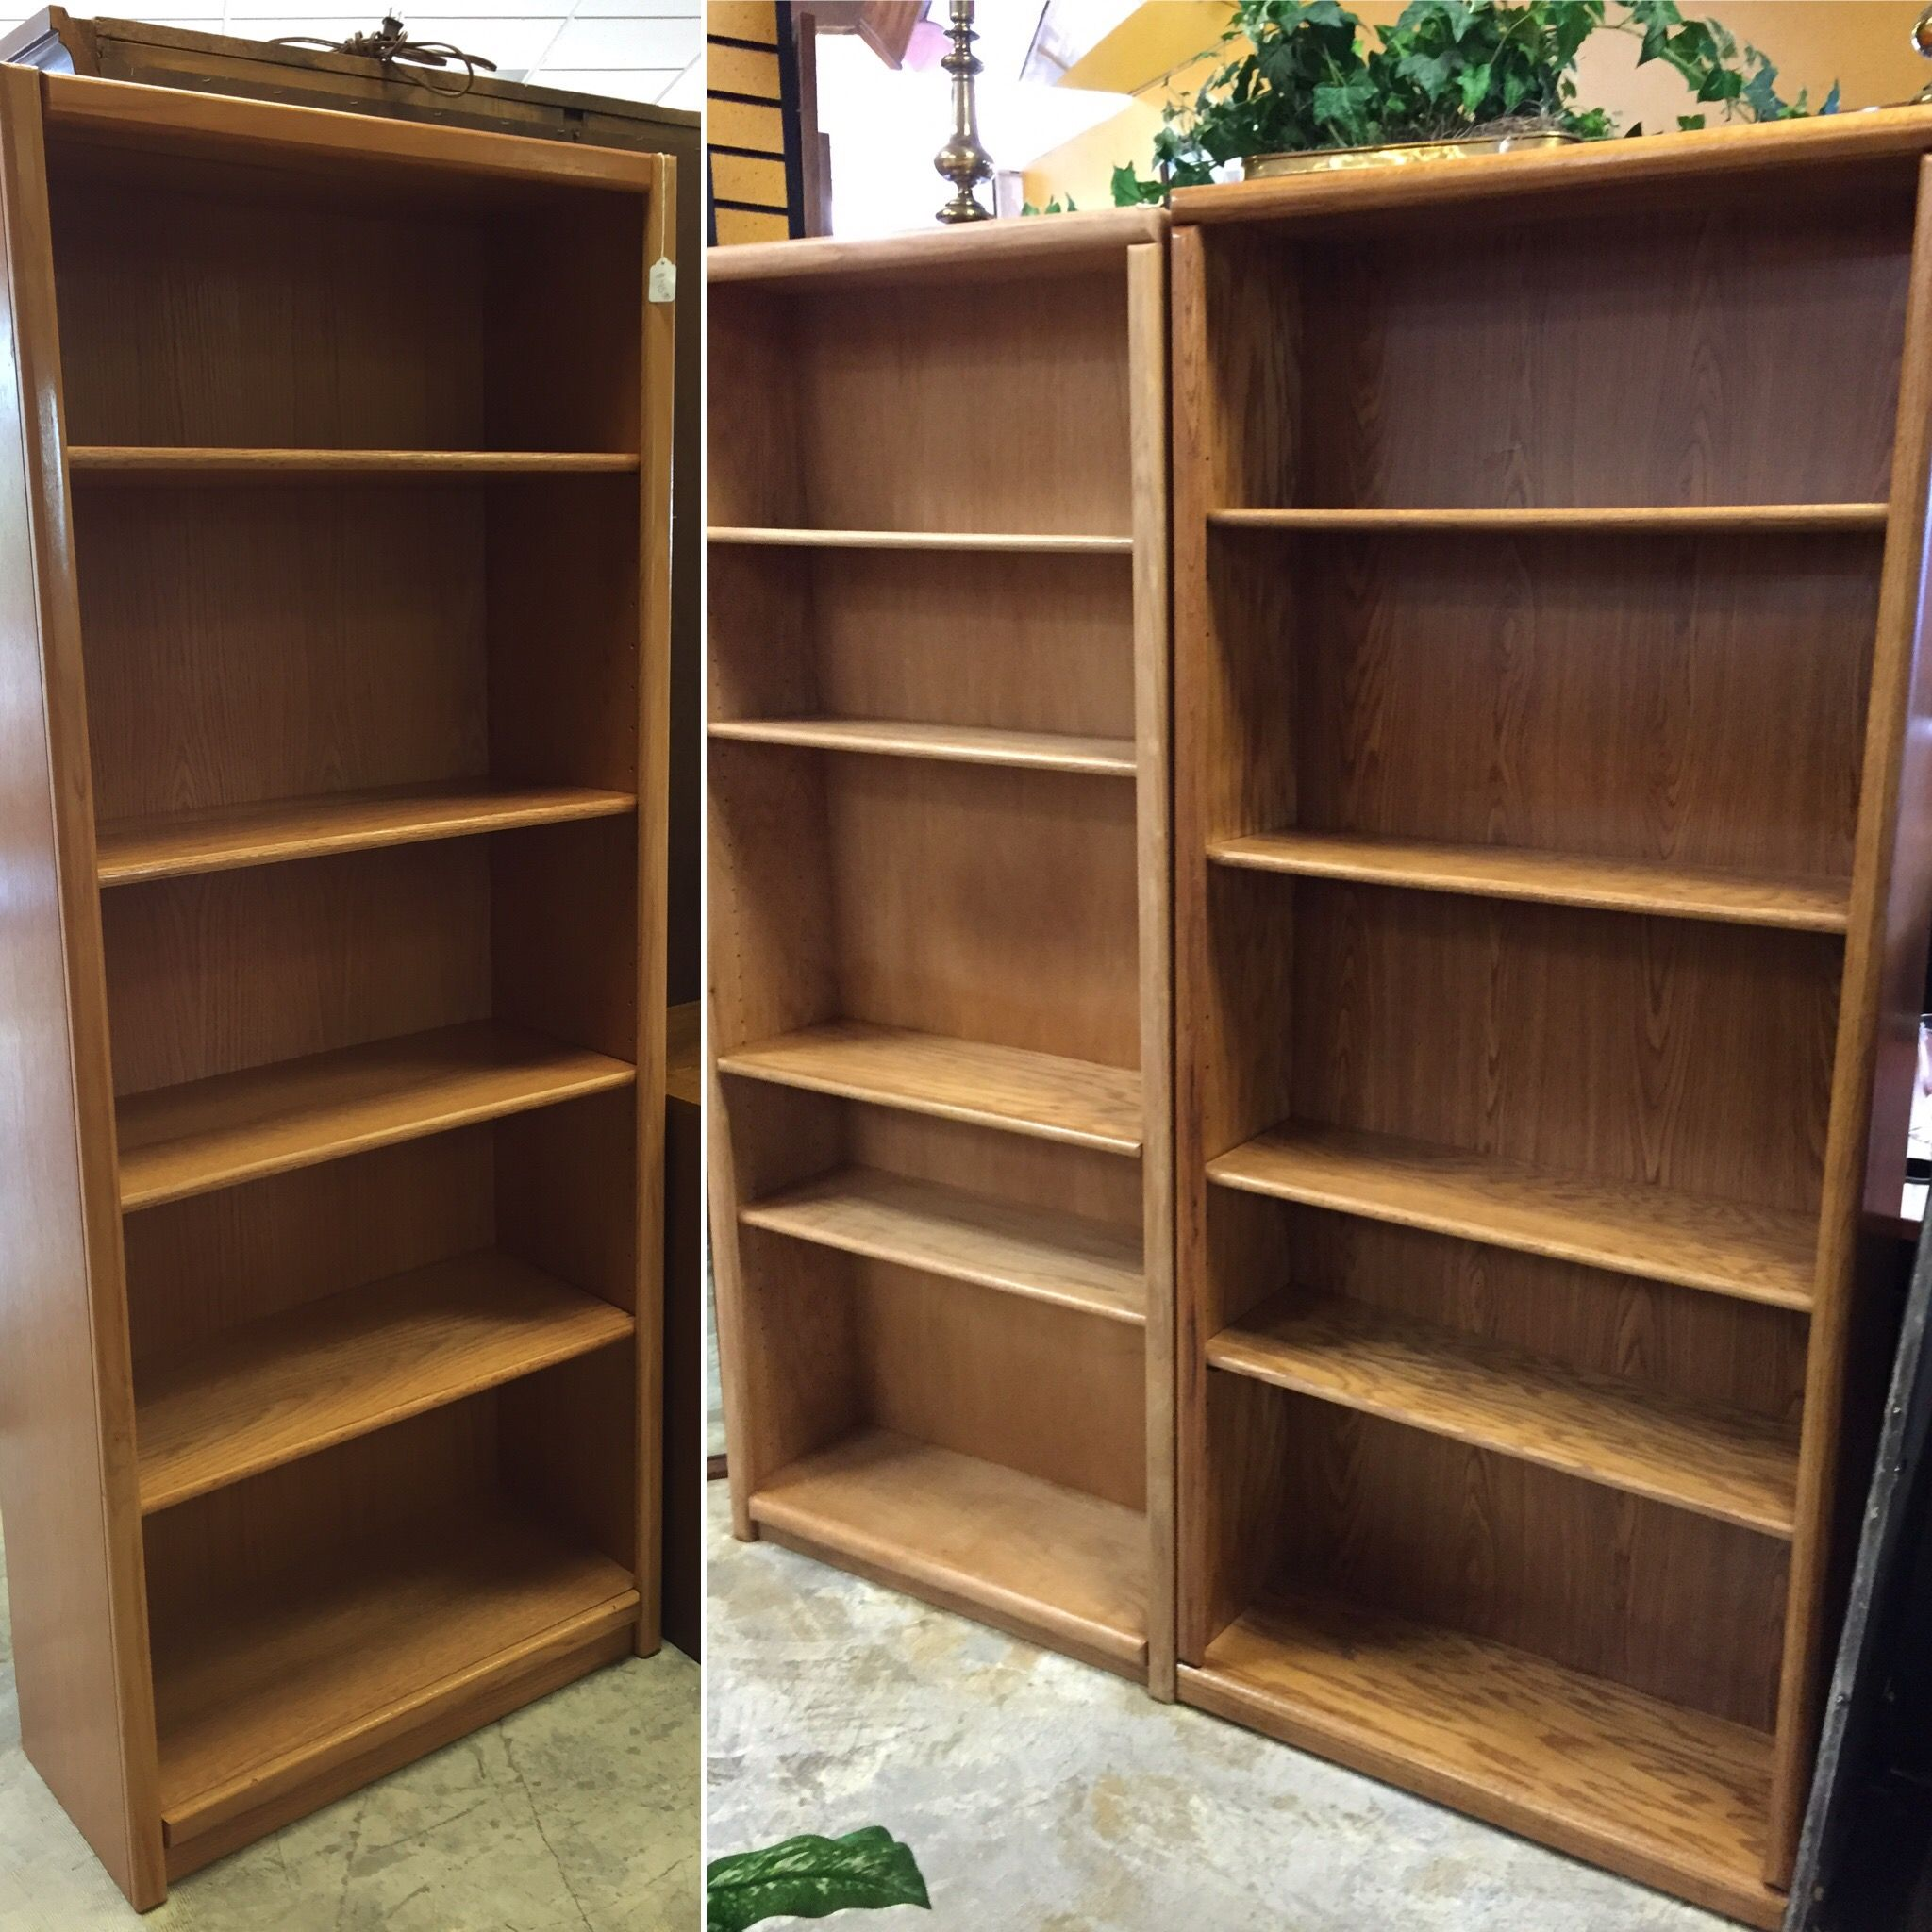 Buy Online At Mkconsignment Forsale Mk Furniture Consignment Book Bookshelf Decor Home House Apartment Design Read